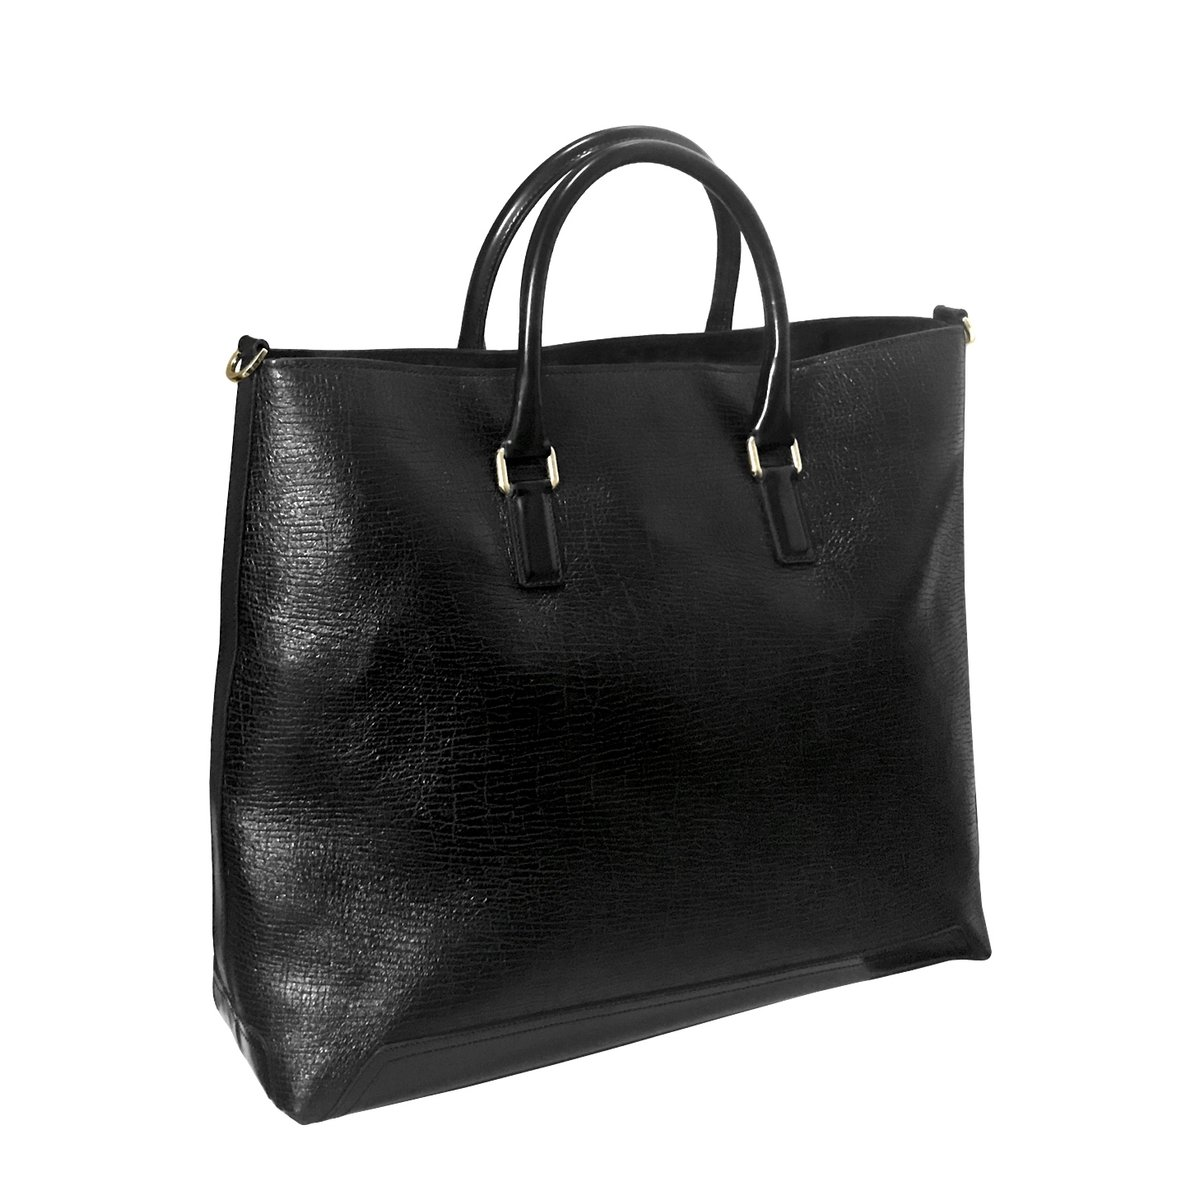 Andrea Incontri Textured Leather Tote Bag 1.jpg